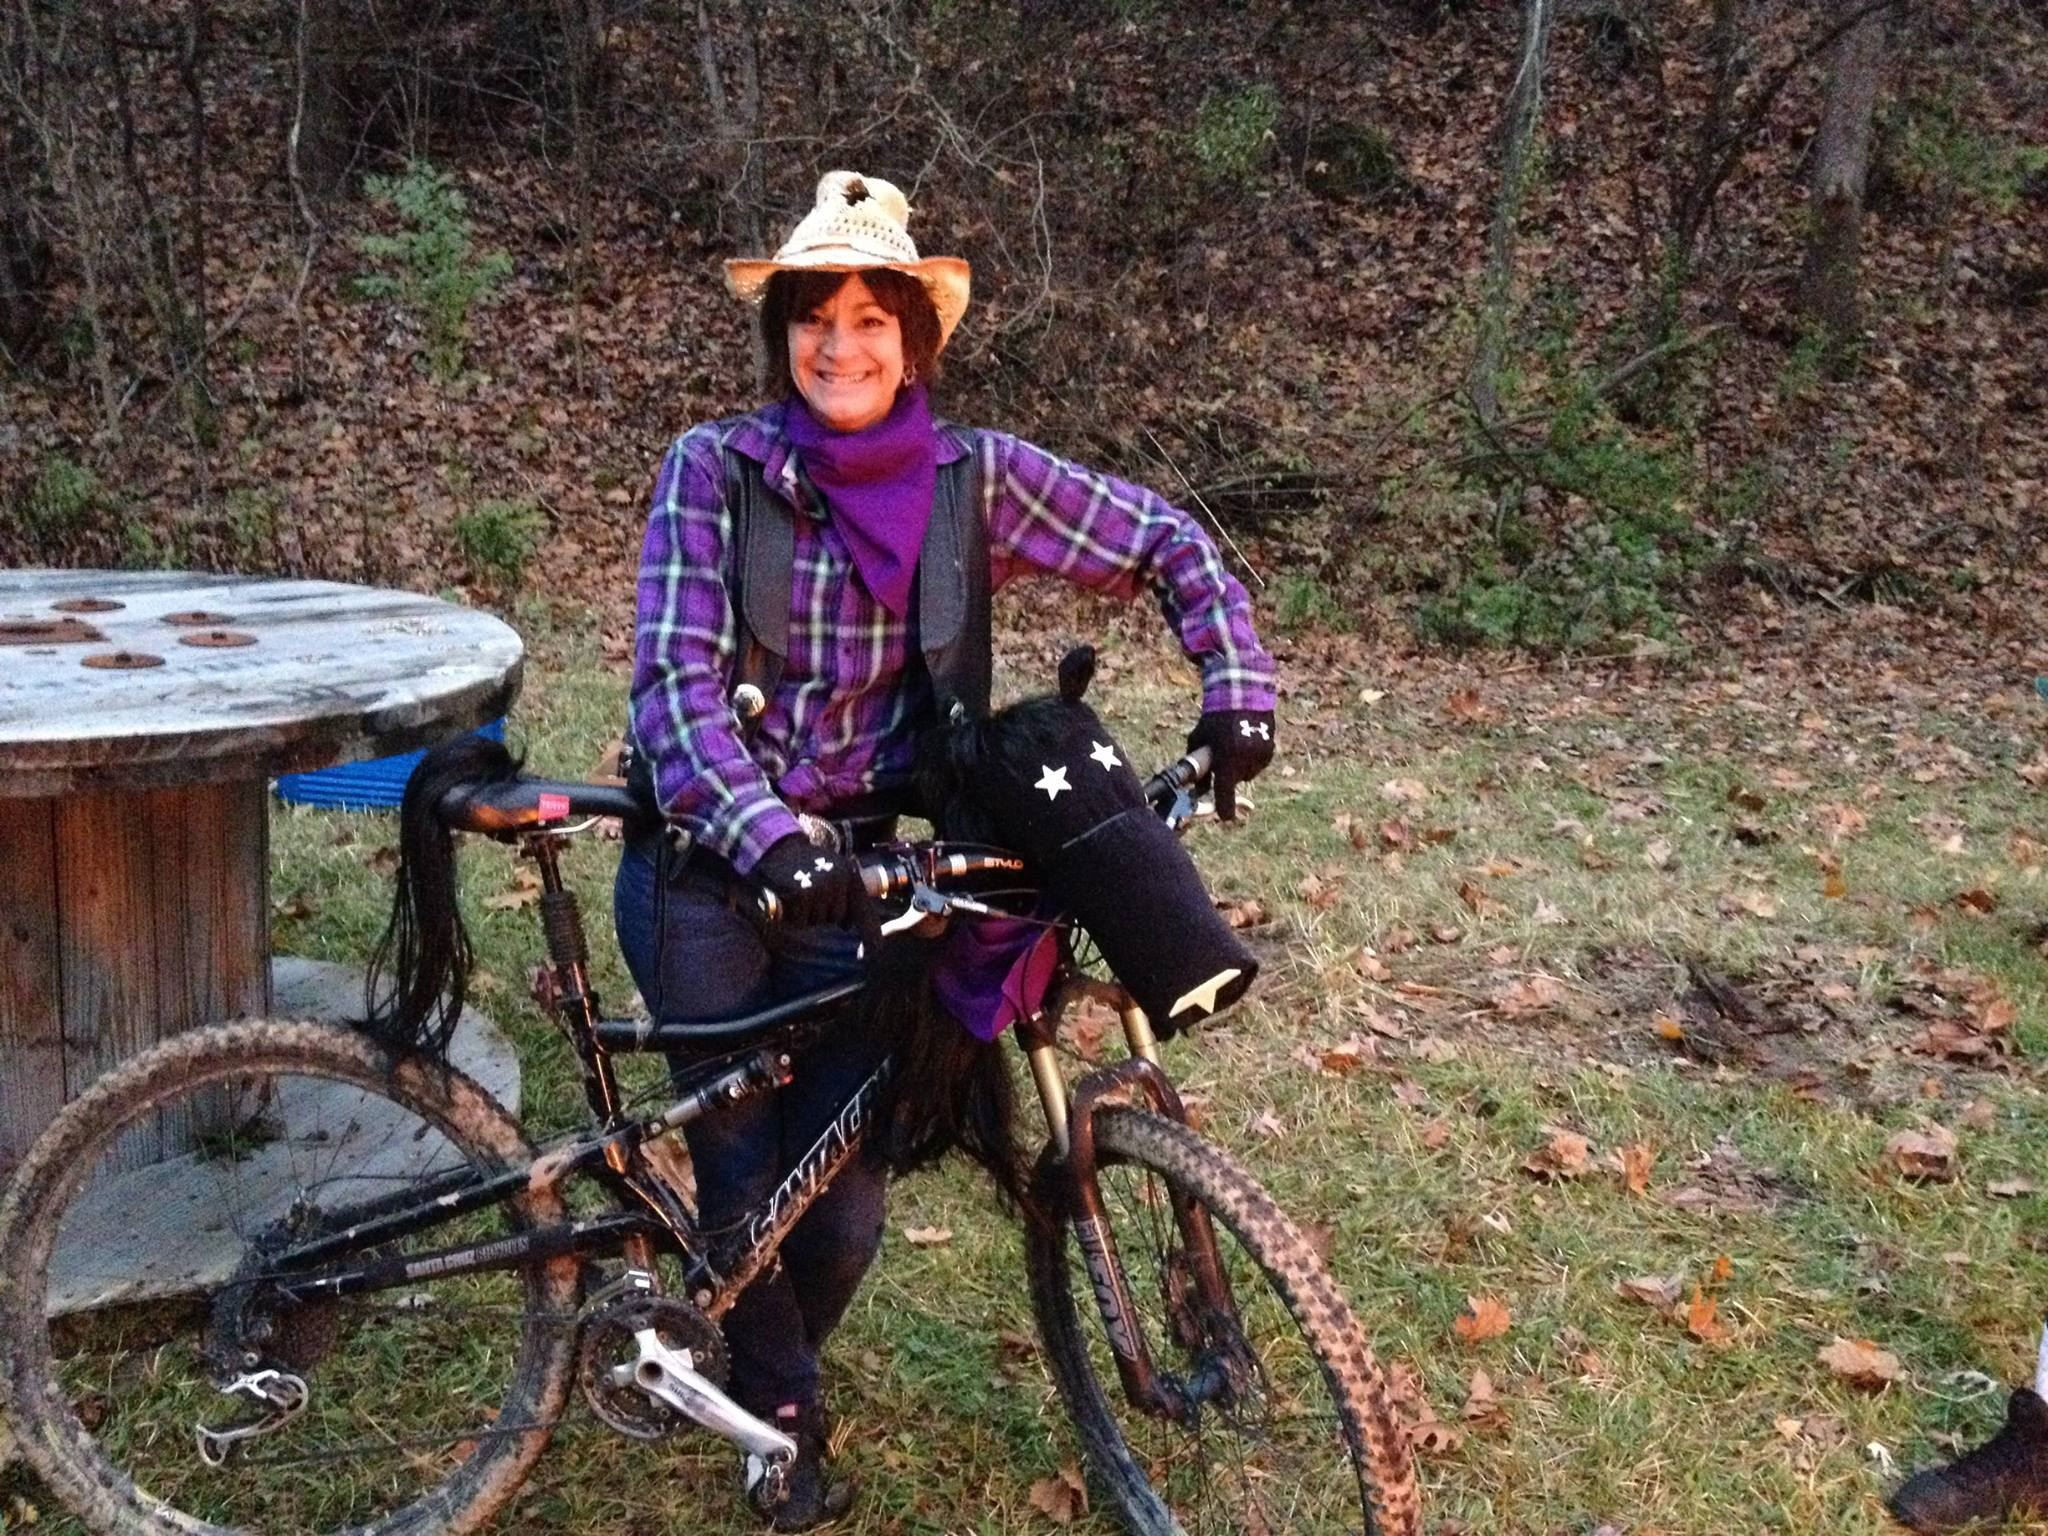 Appalachian Outdoor Adventures - Biking